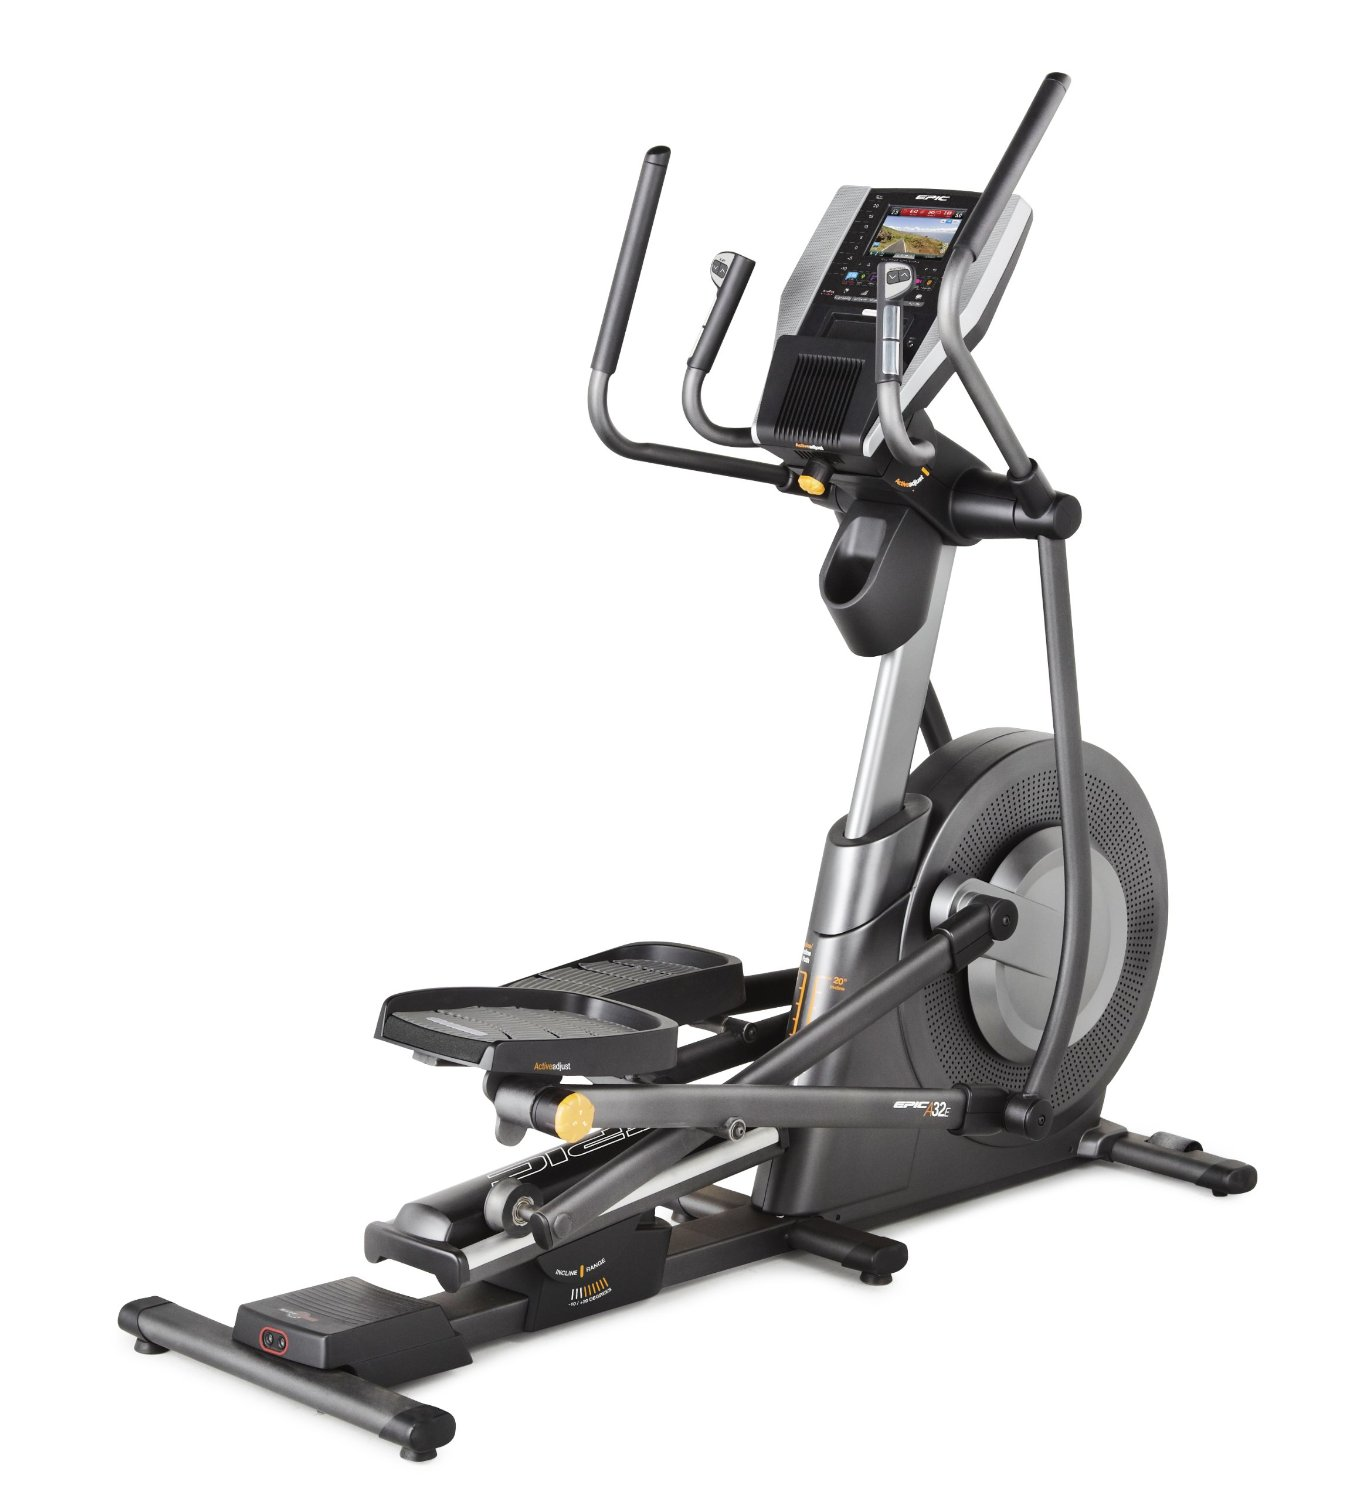 Epic Elliptical Reviews – Which Is The Best- A30E, A32E or A35E?